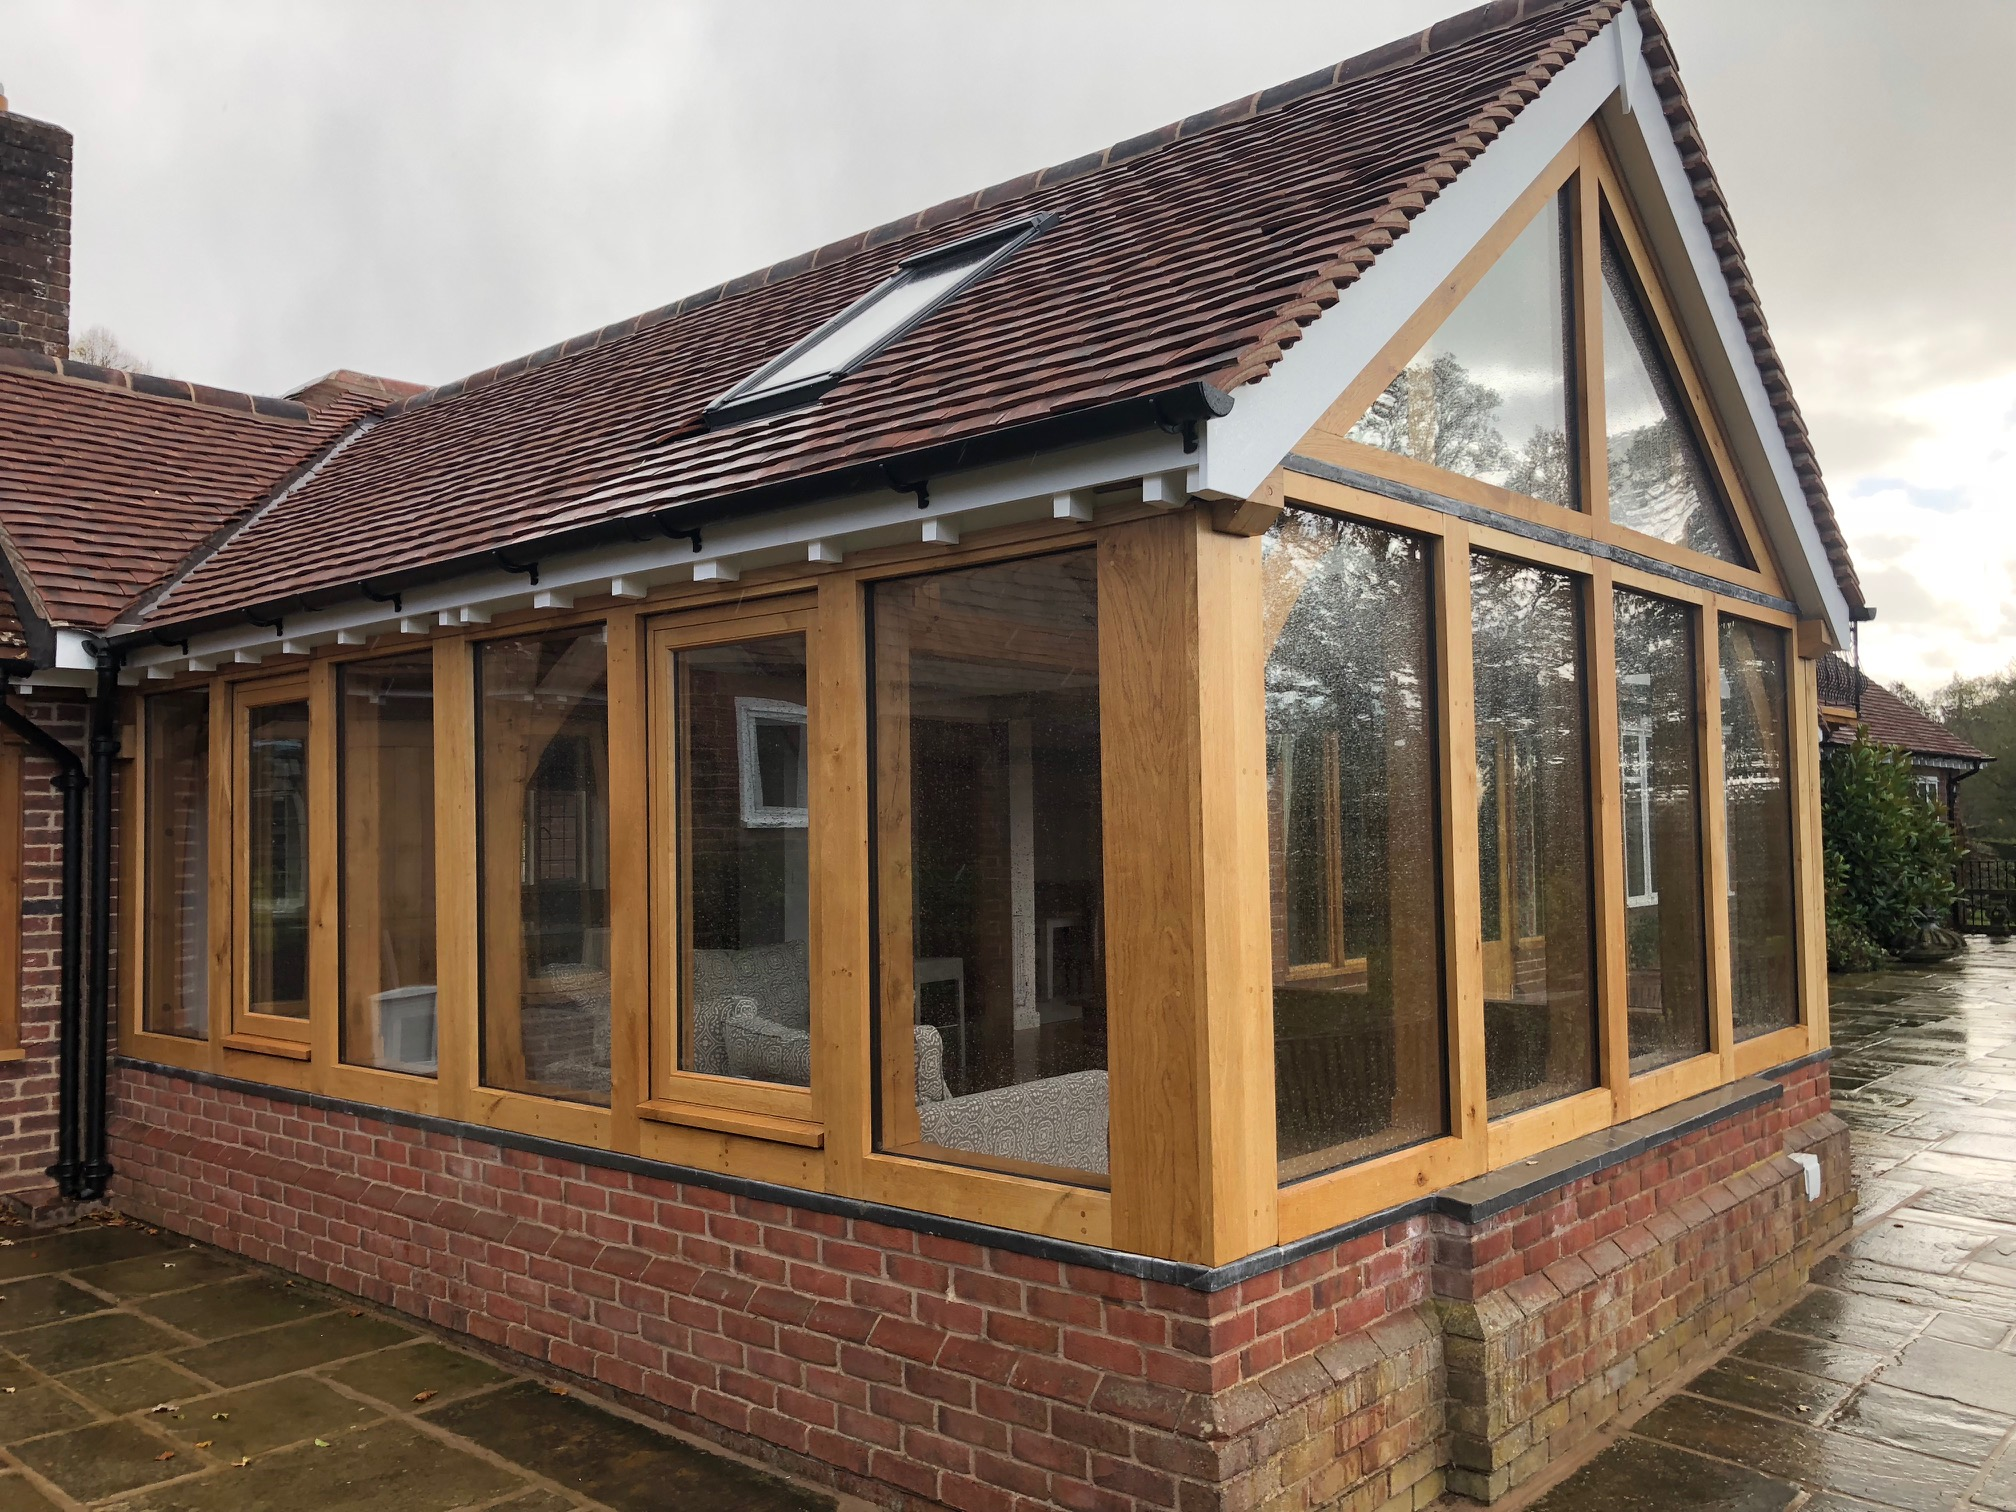 Oak framed garden room extension sat on a dwarf red brick wall